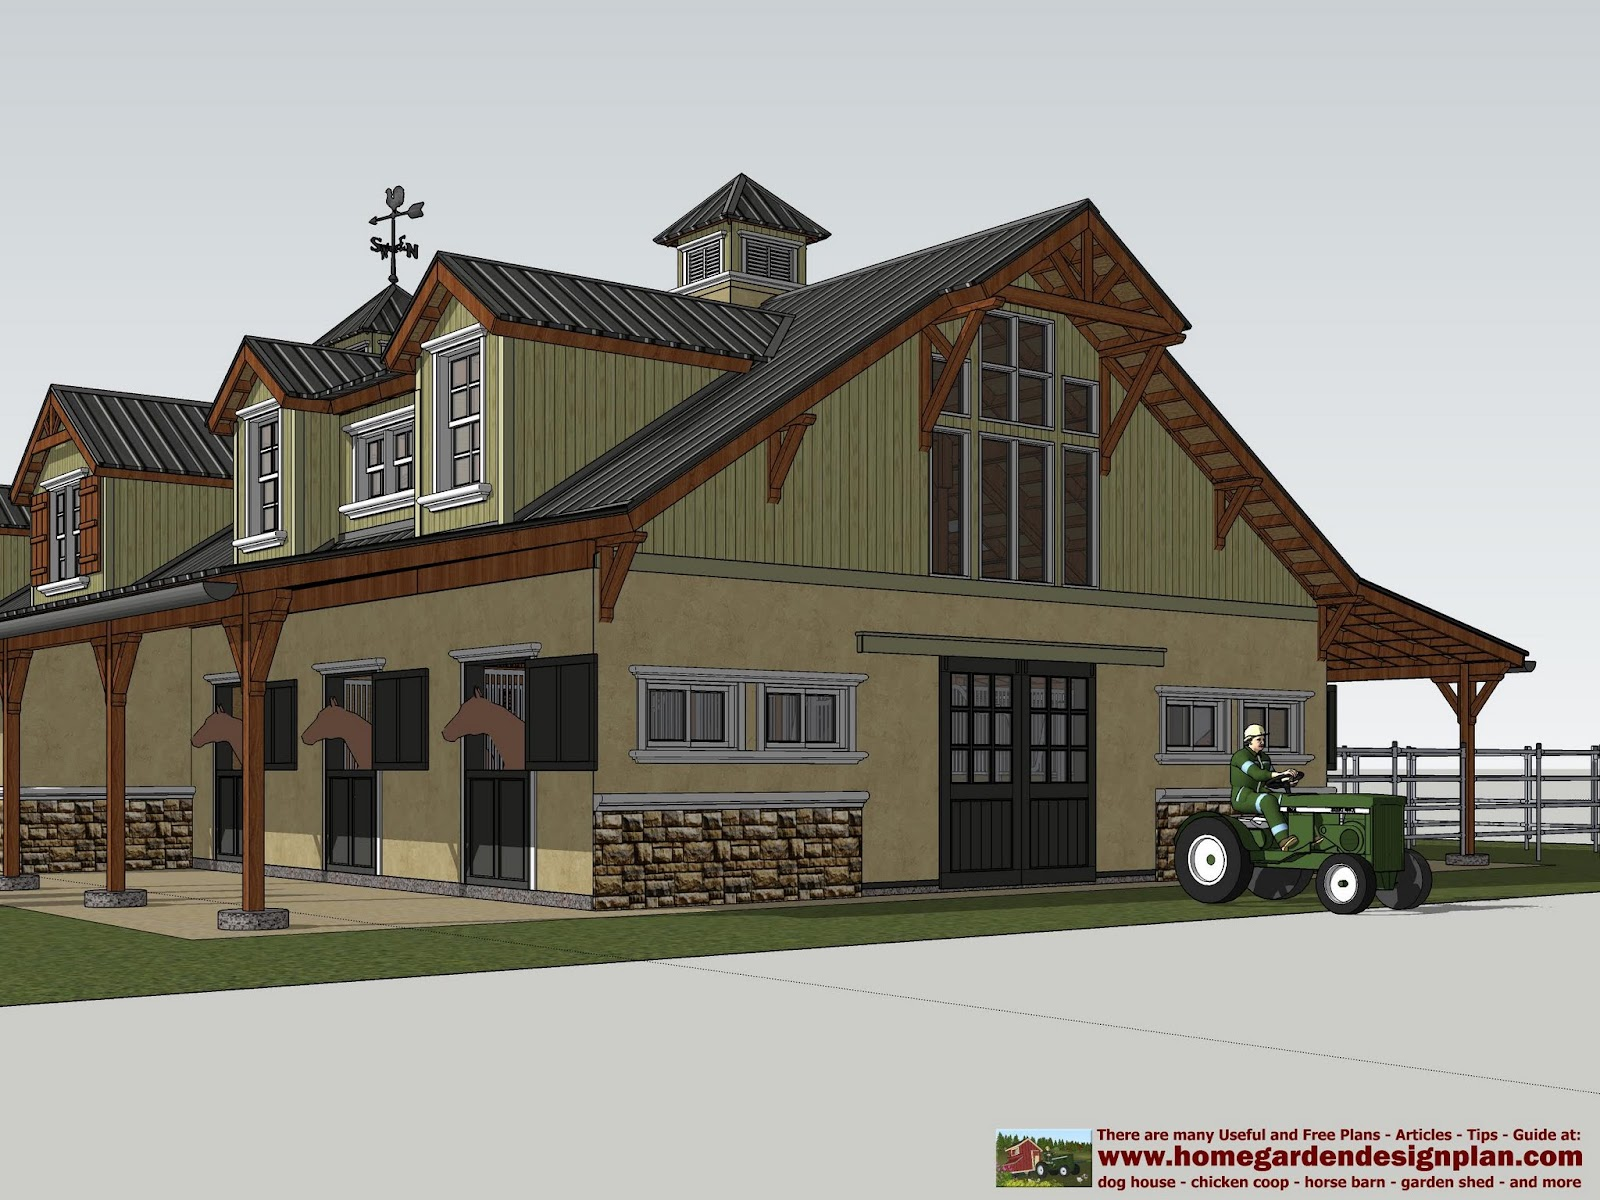 Home garden plans hb100 horse barn plans horse barn for Horse barn plans free